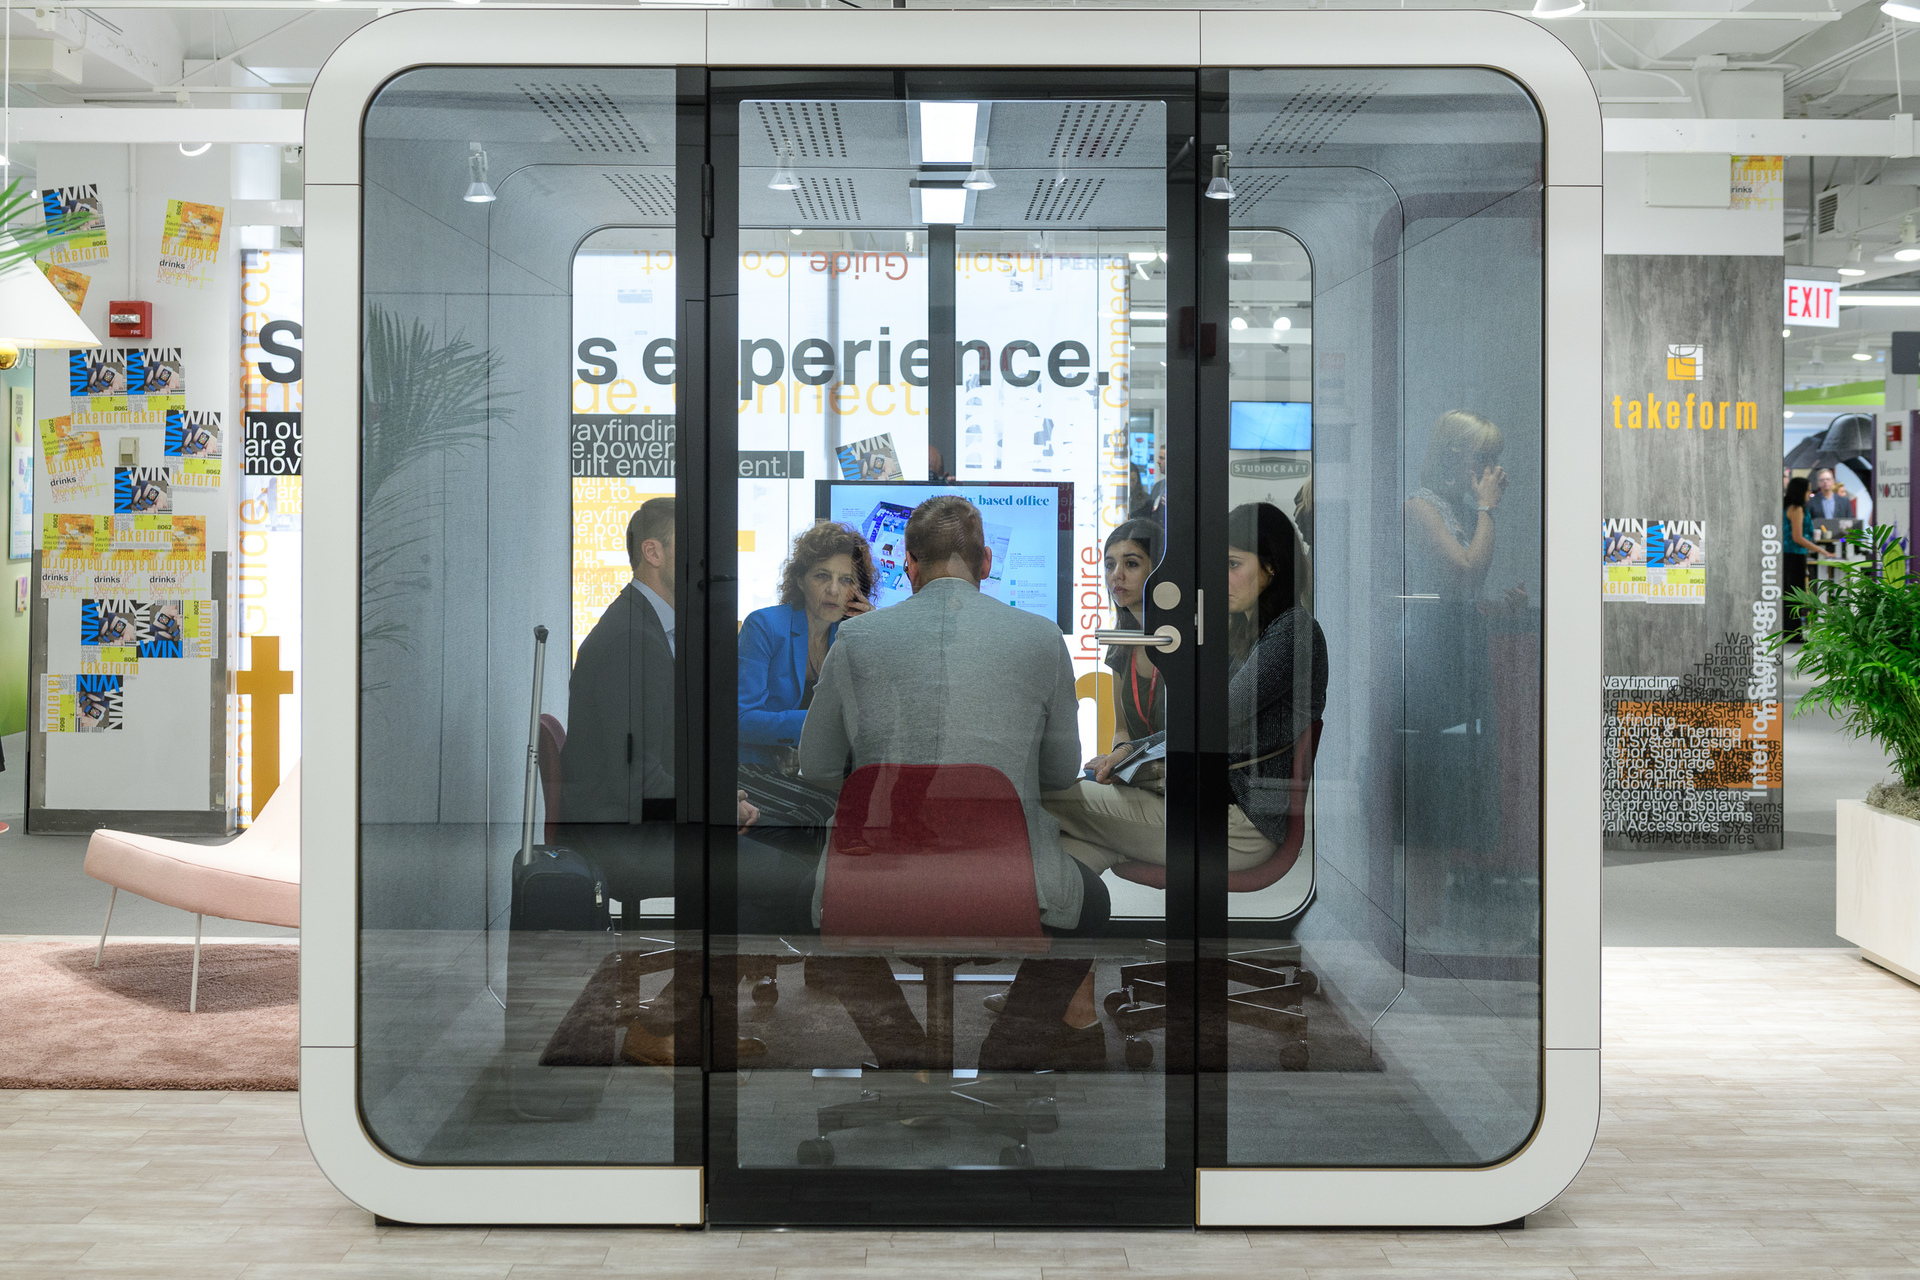 With the Framery 2Q, you can have the perfect space for team meetings at a fraction of the cost of building a separate meeting room.